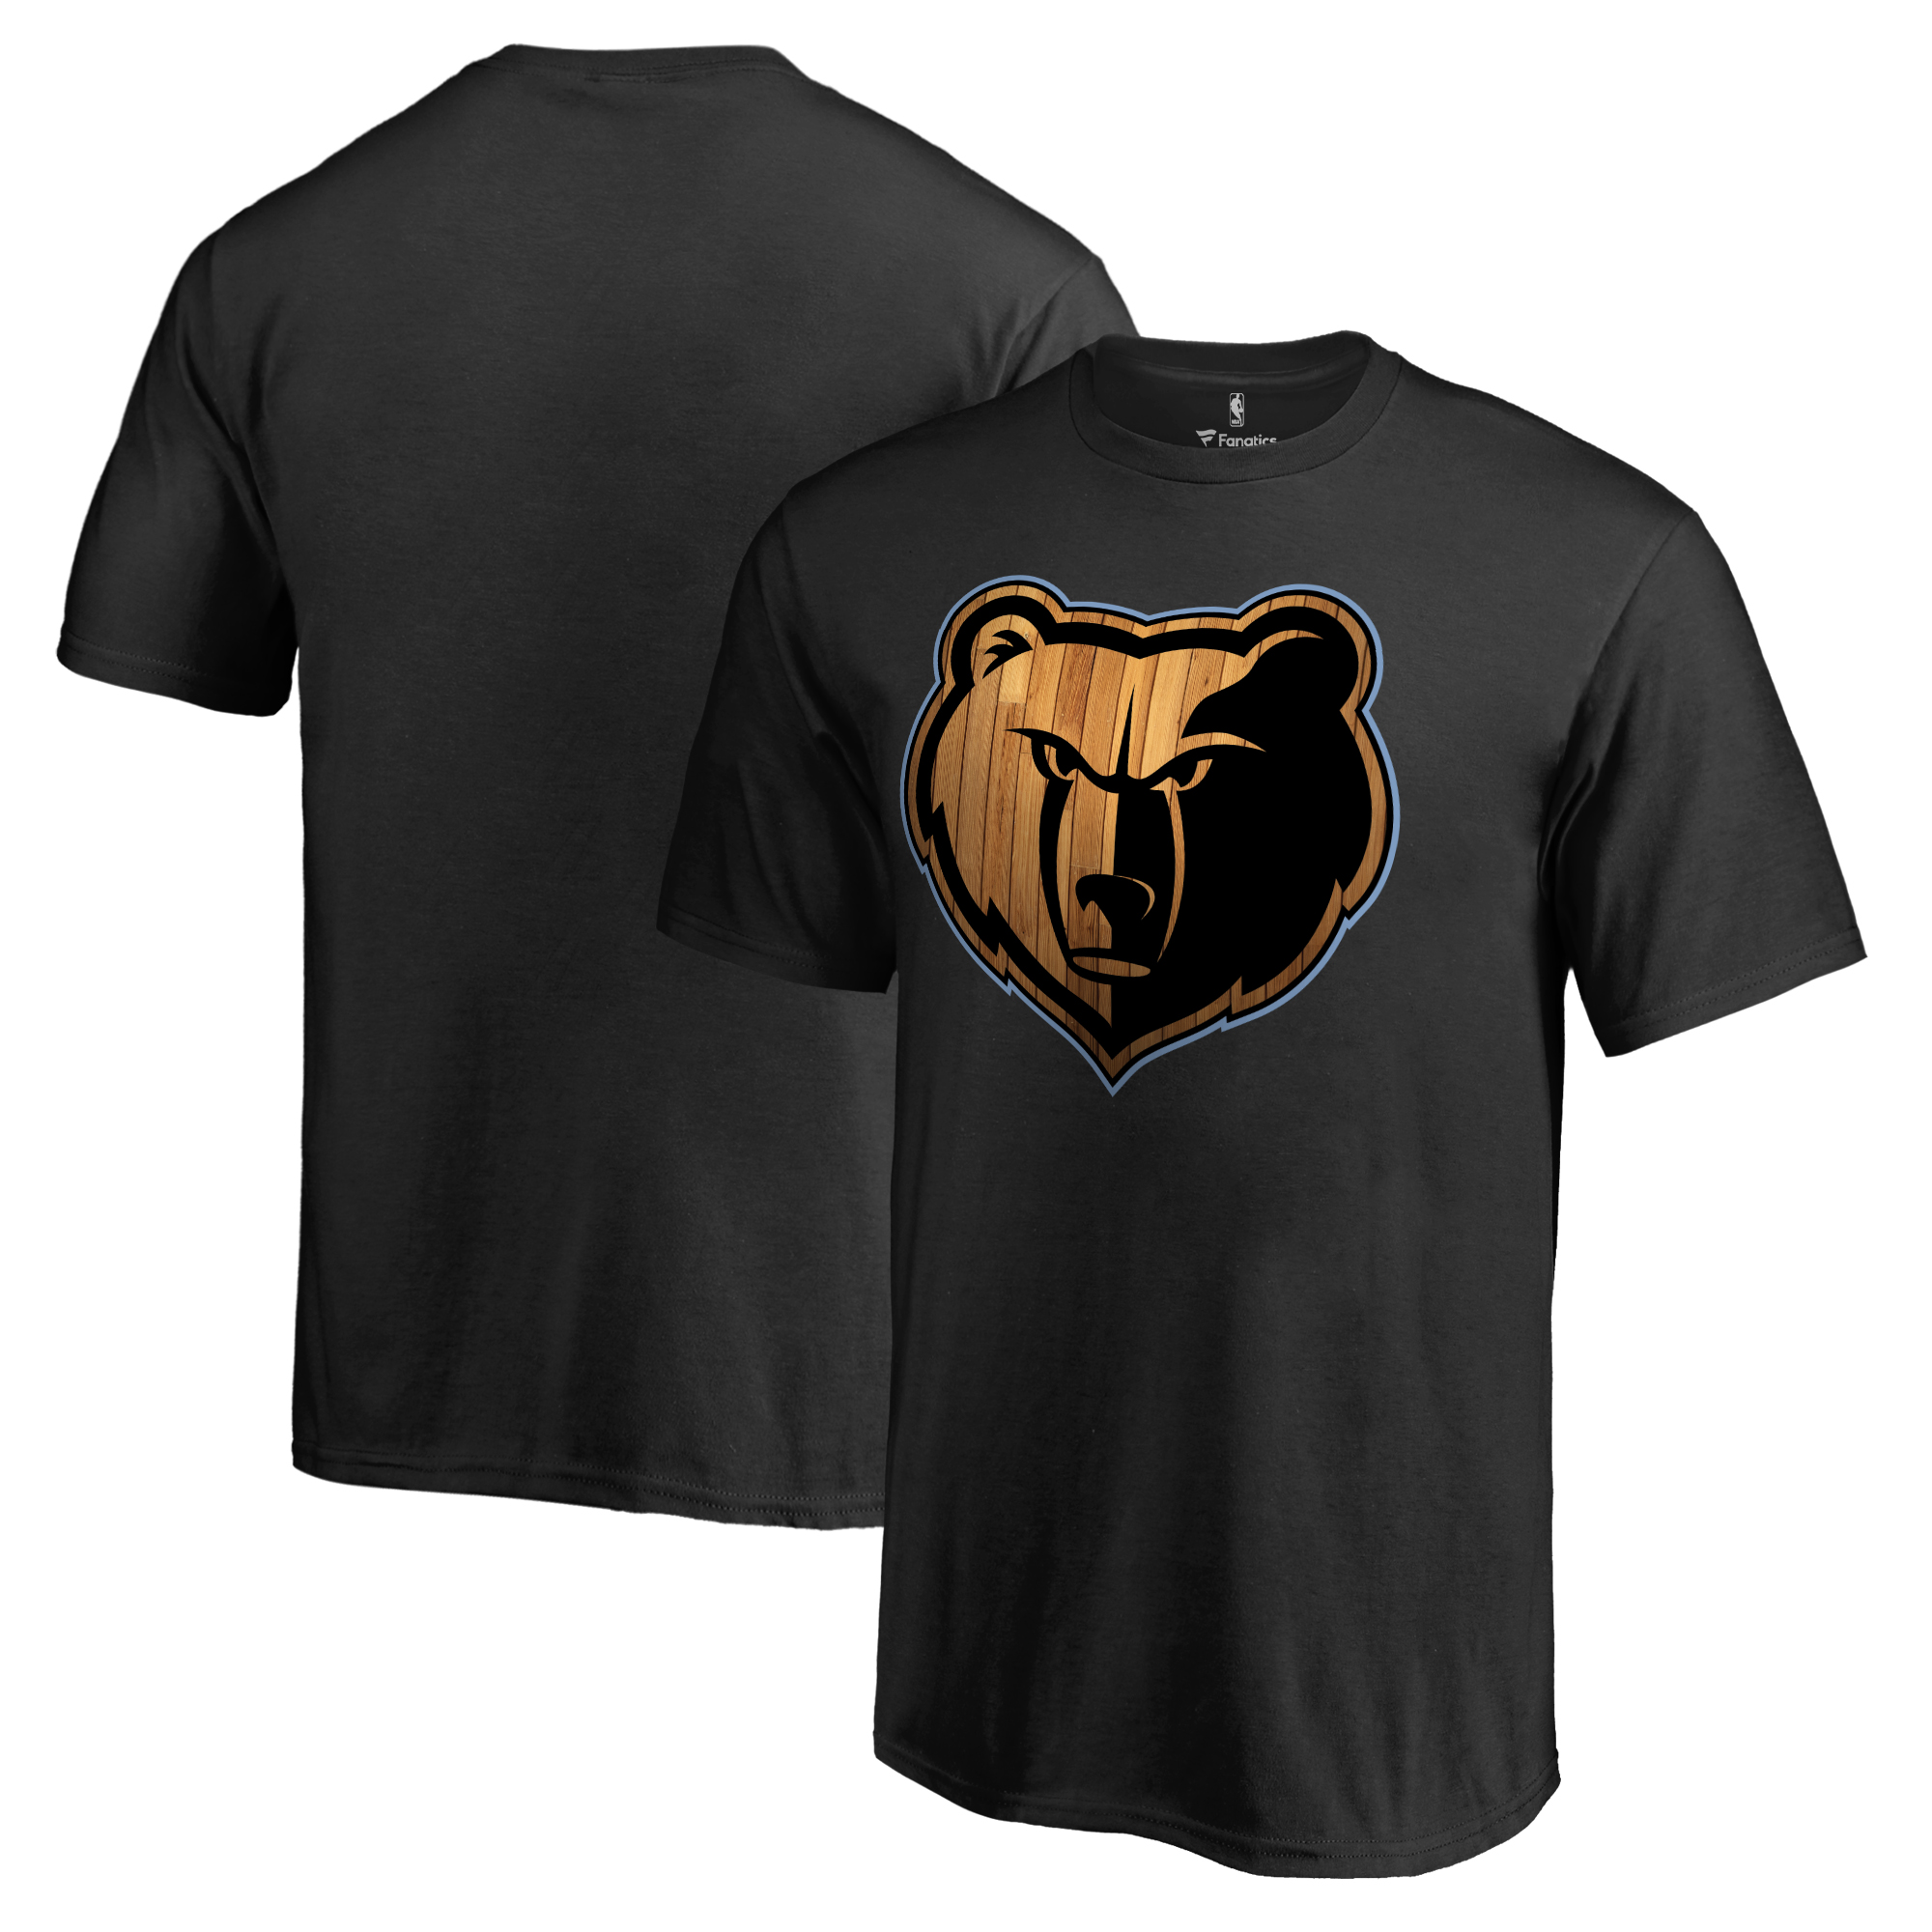 Memphis Grizzlies Youth Hardwood T-Shirt - Black